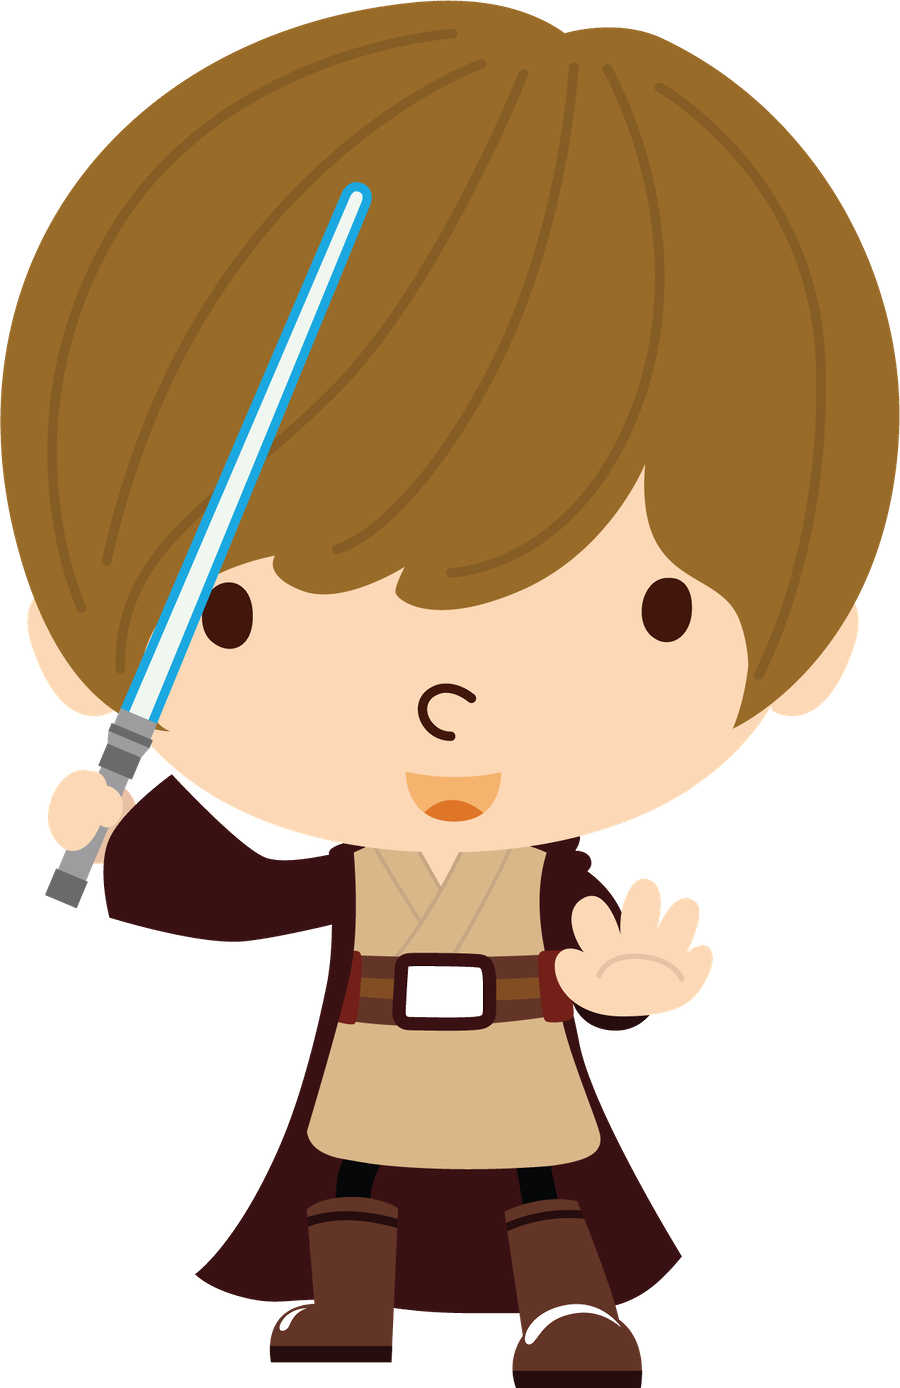 Star wars cartoon characters clipart vector library Star Wars - Minus | already felt- characters 2 | Pinterest | Star ... vector library